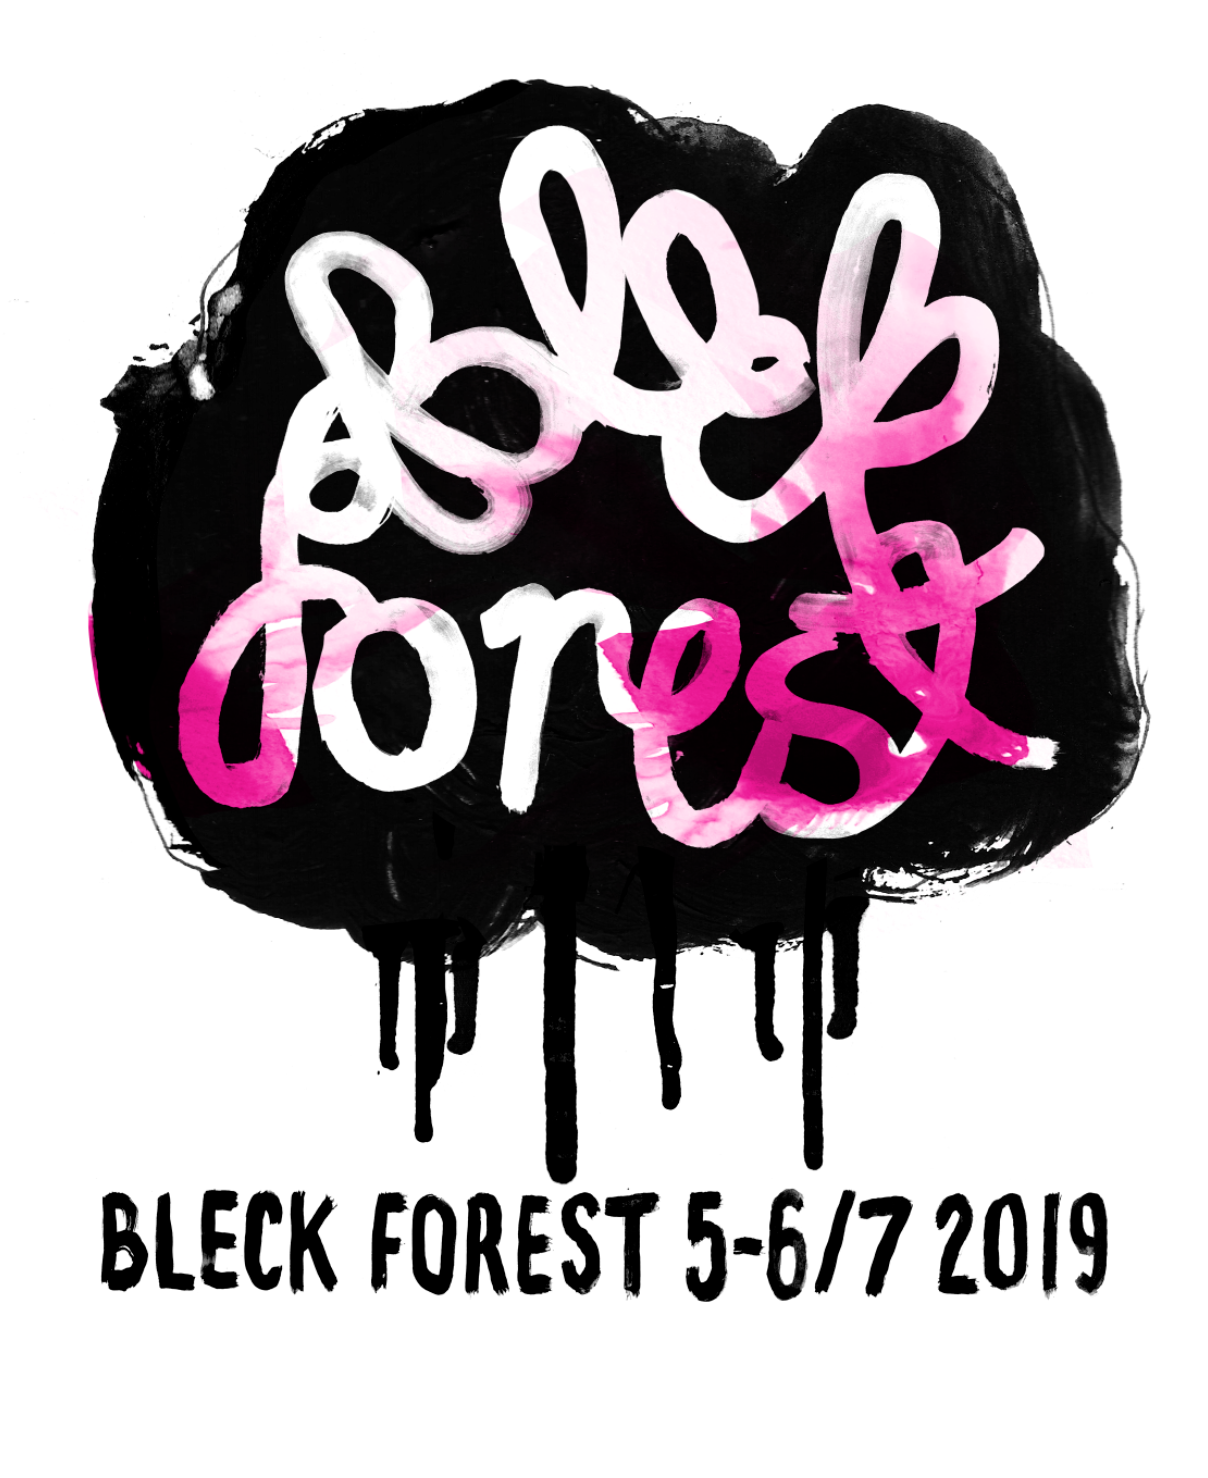 Bleck Forest